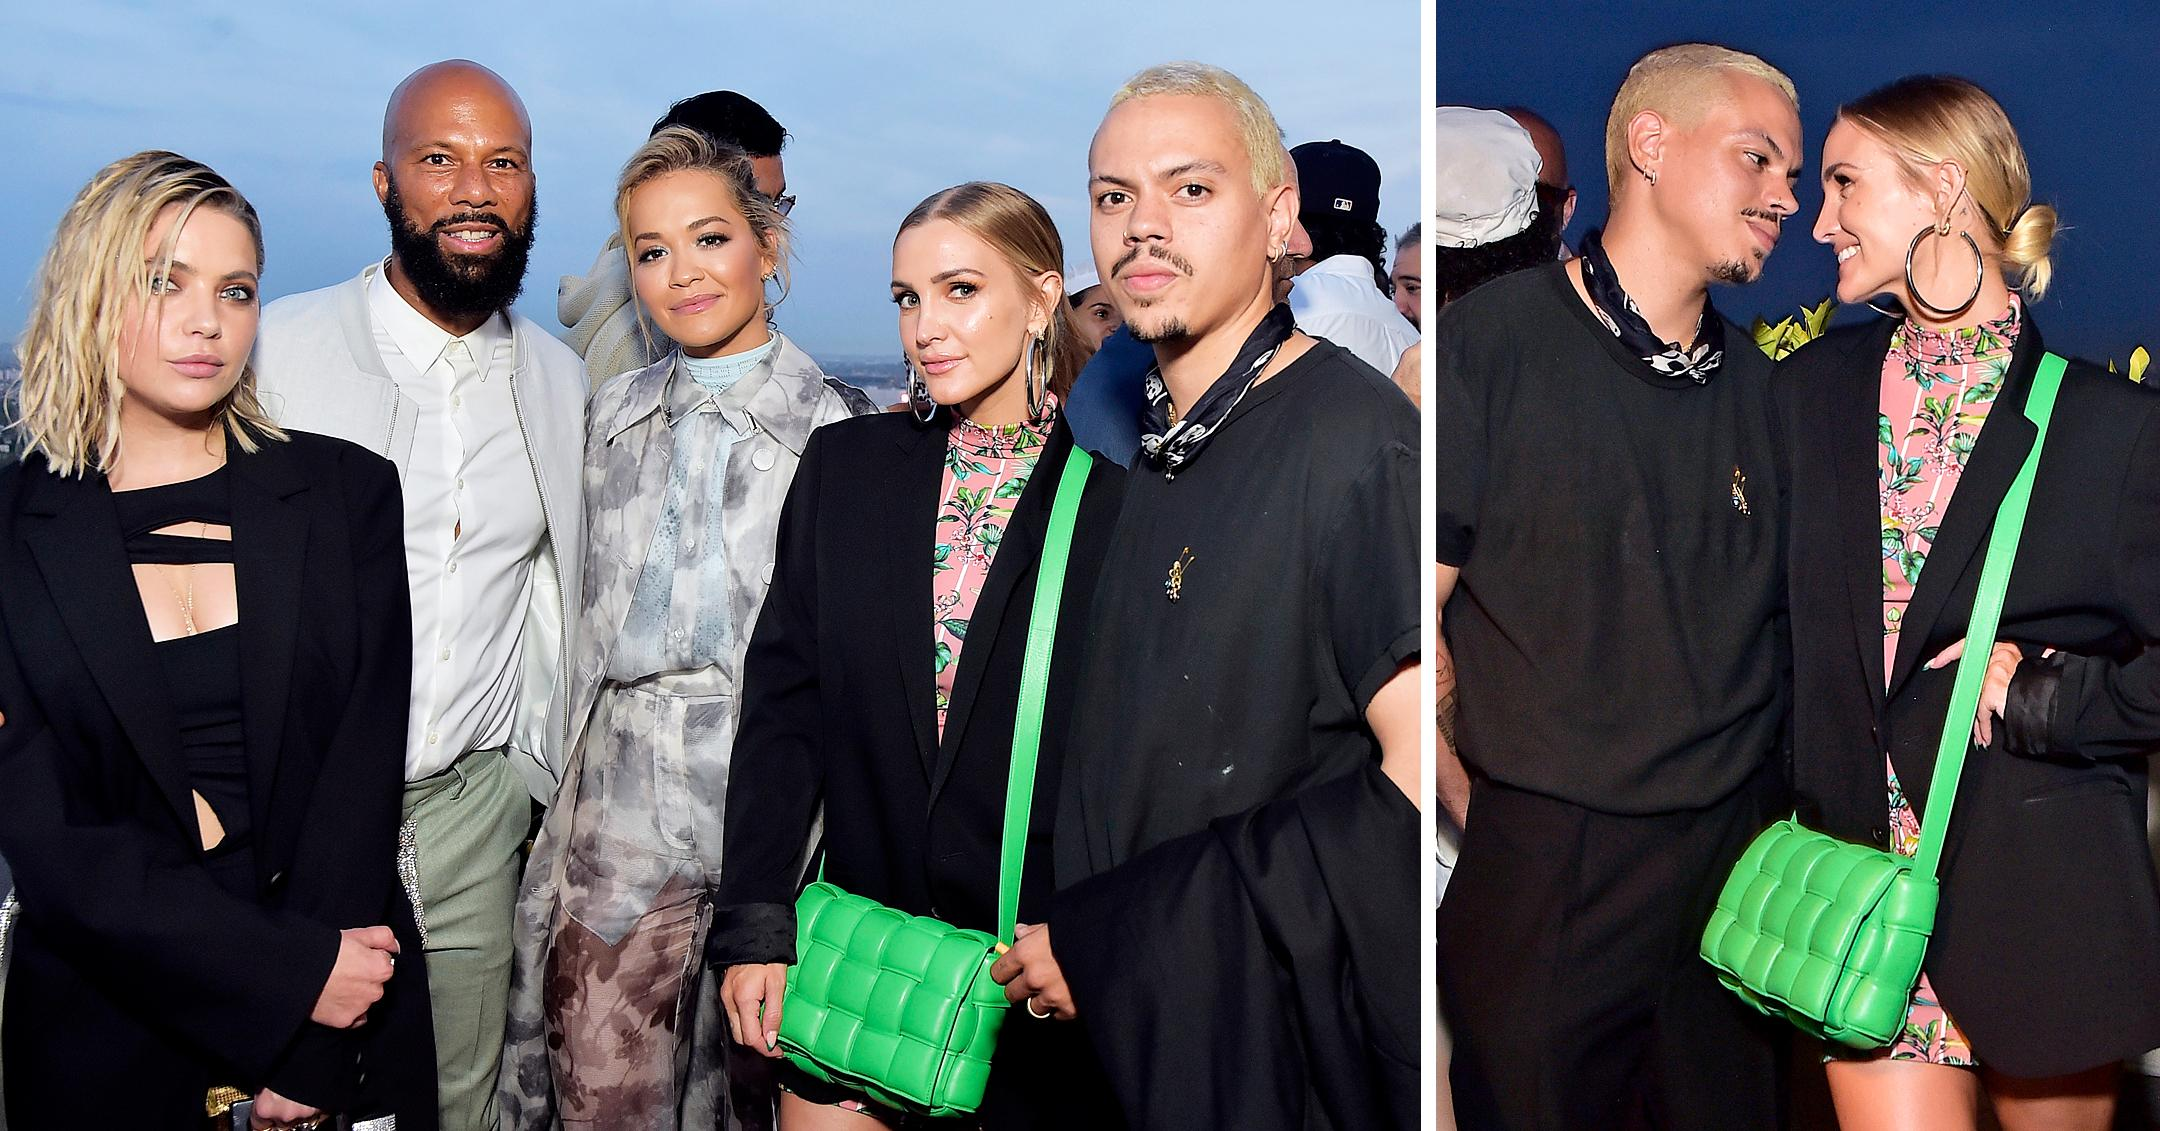 ashlee simpson ashley benson rita ora and more at artist and actor common hosts coin cloud cocktail party